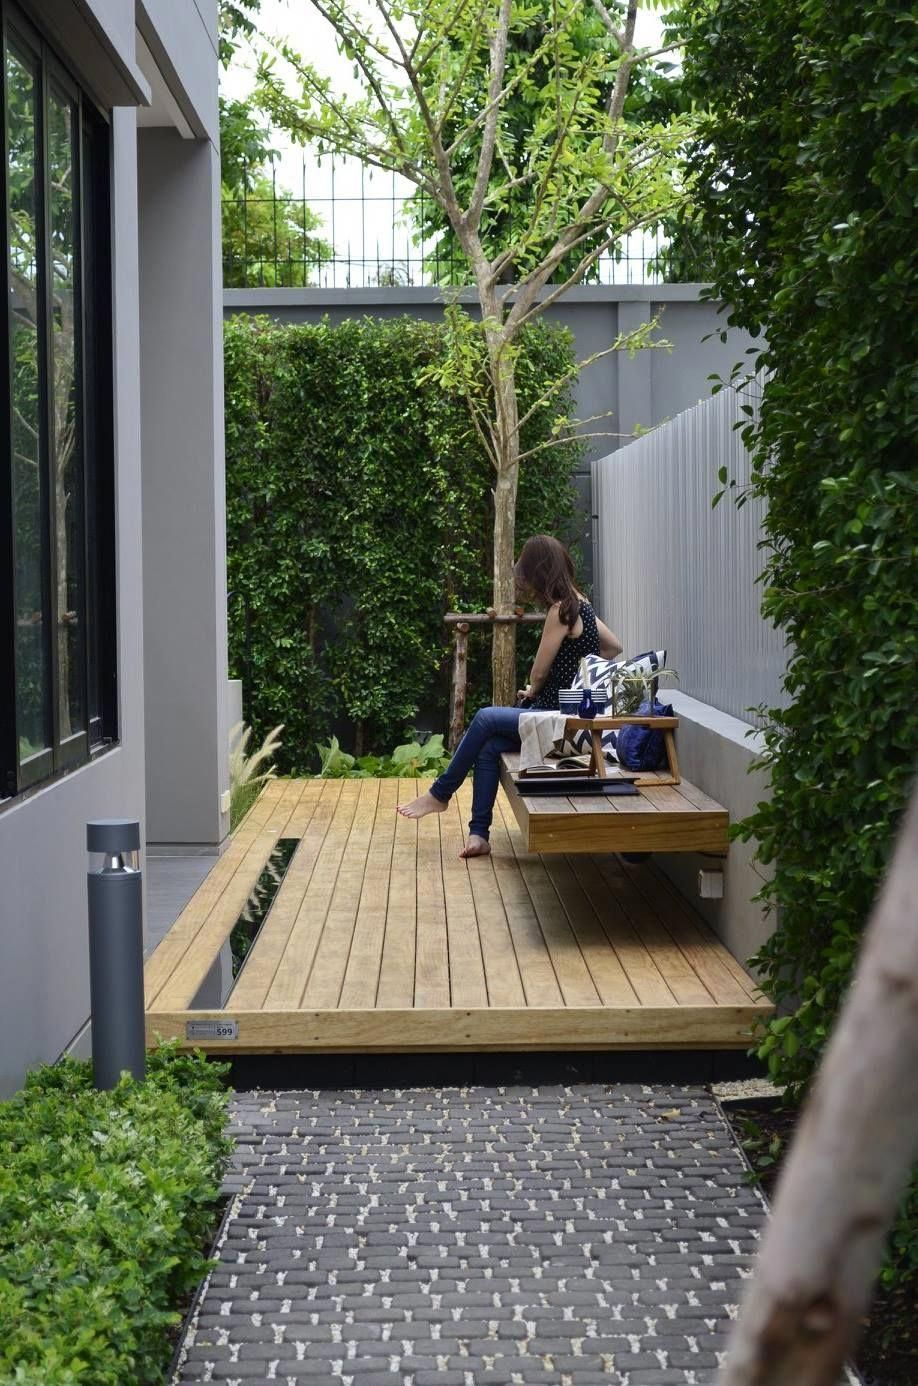 What Do You Do When A New Housing Development Is Going Right Behind Your House Outdoor Entertaining Area You Amenagement Jardin Terrasse Jardin Arriere Cour New house backyard design